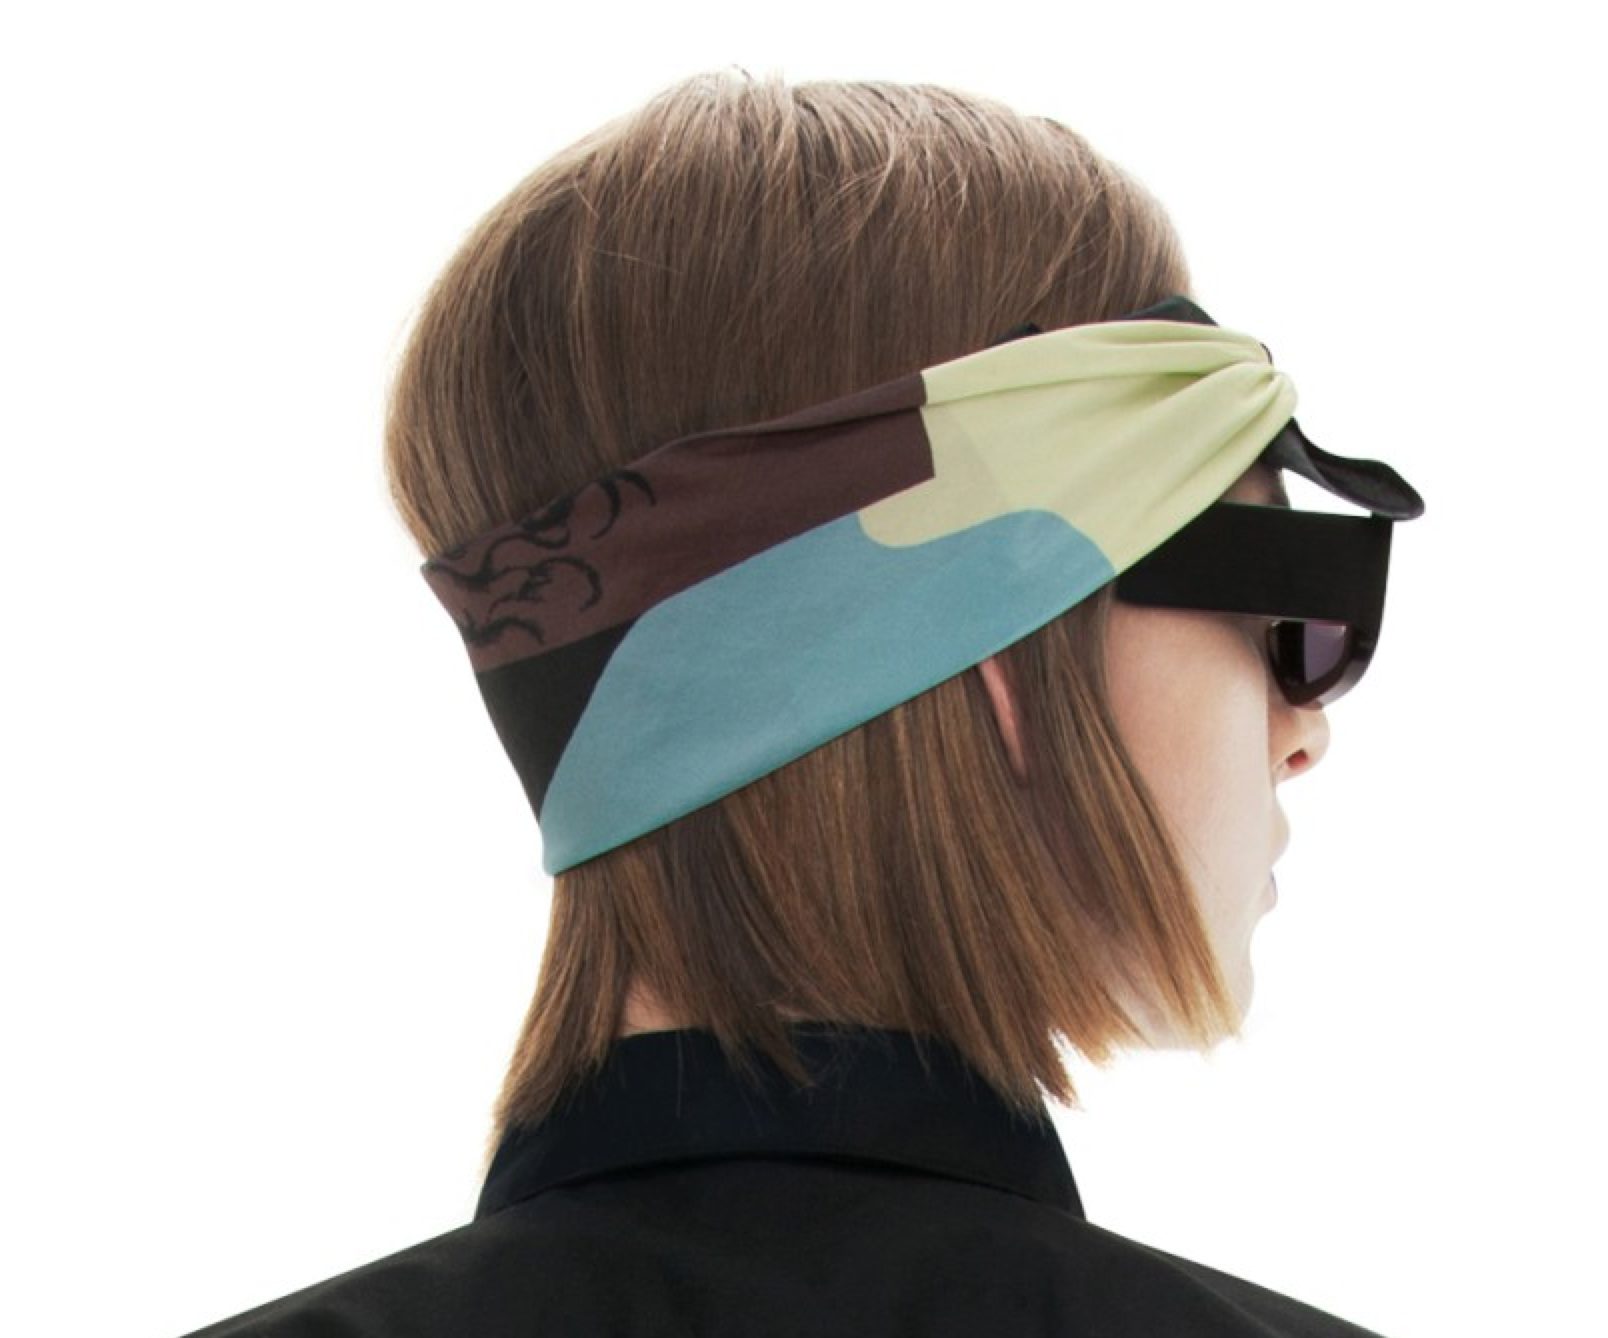 Acne Capsule collecion summer 2013 headband